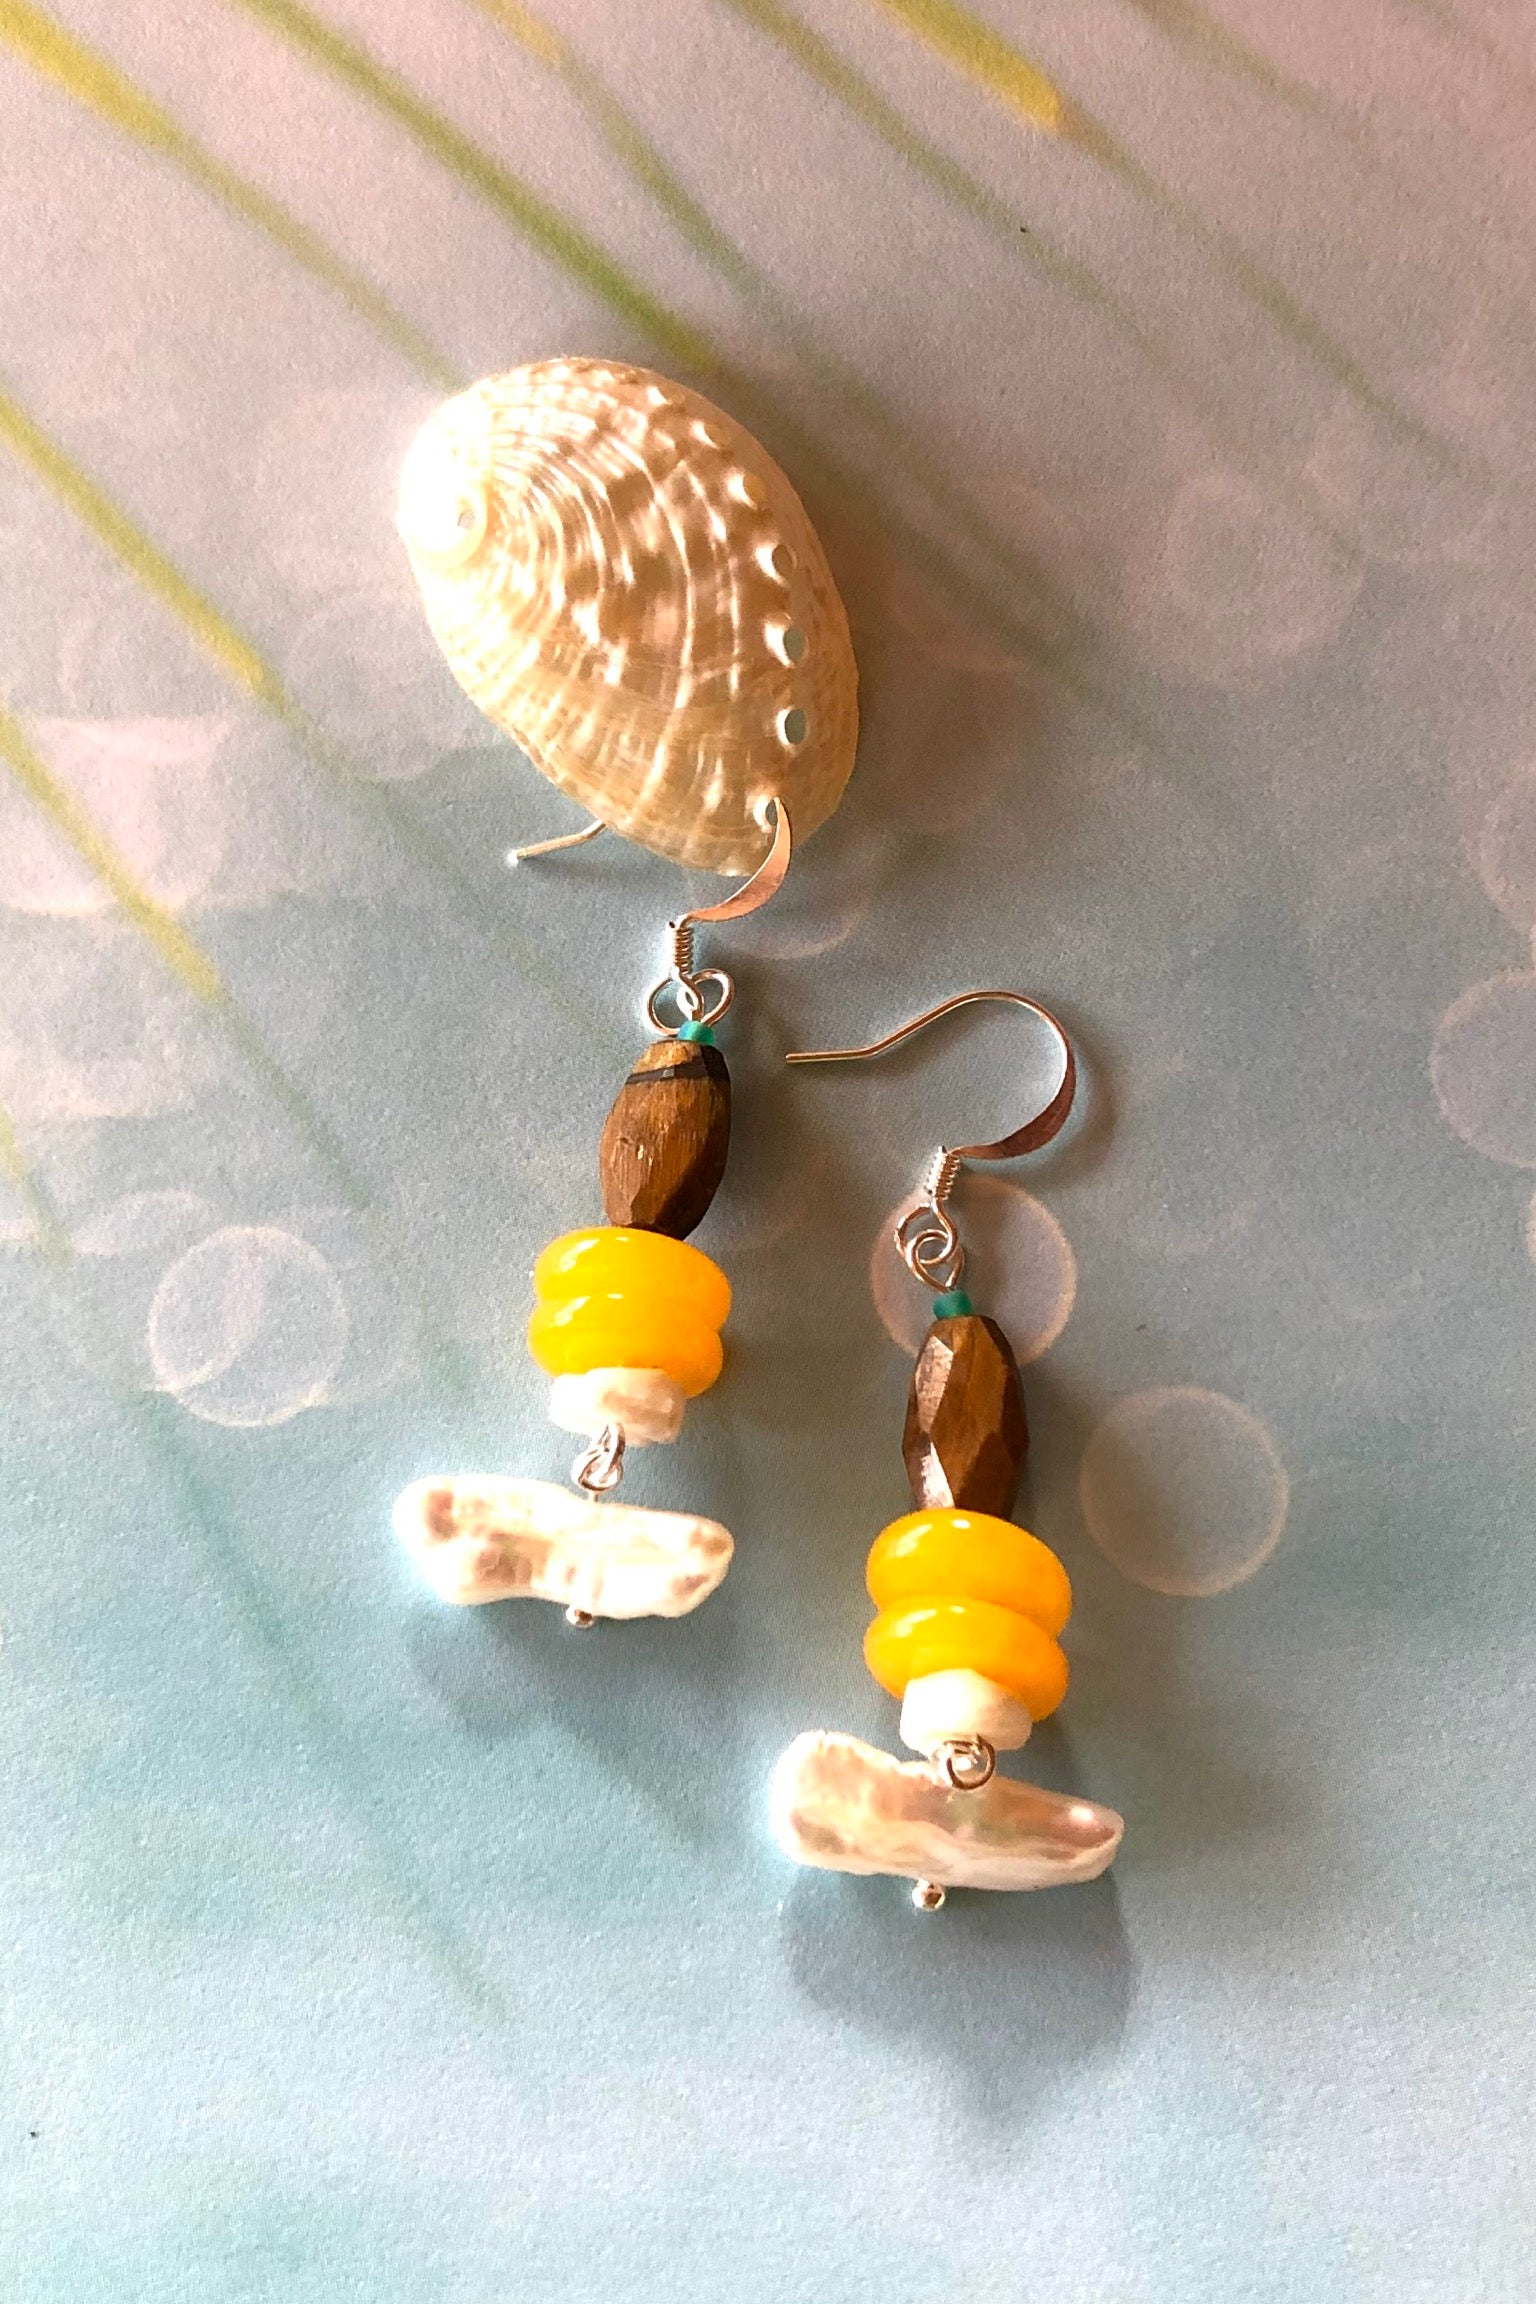 The Earrings Samara May Pearl are Made in Noosa, Australia featuring beautiful stones such as Faceted Tigers Eye from Africa, shell bead, Lustrous Baroque pearl dangle, quartz and they are village cut.